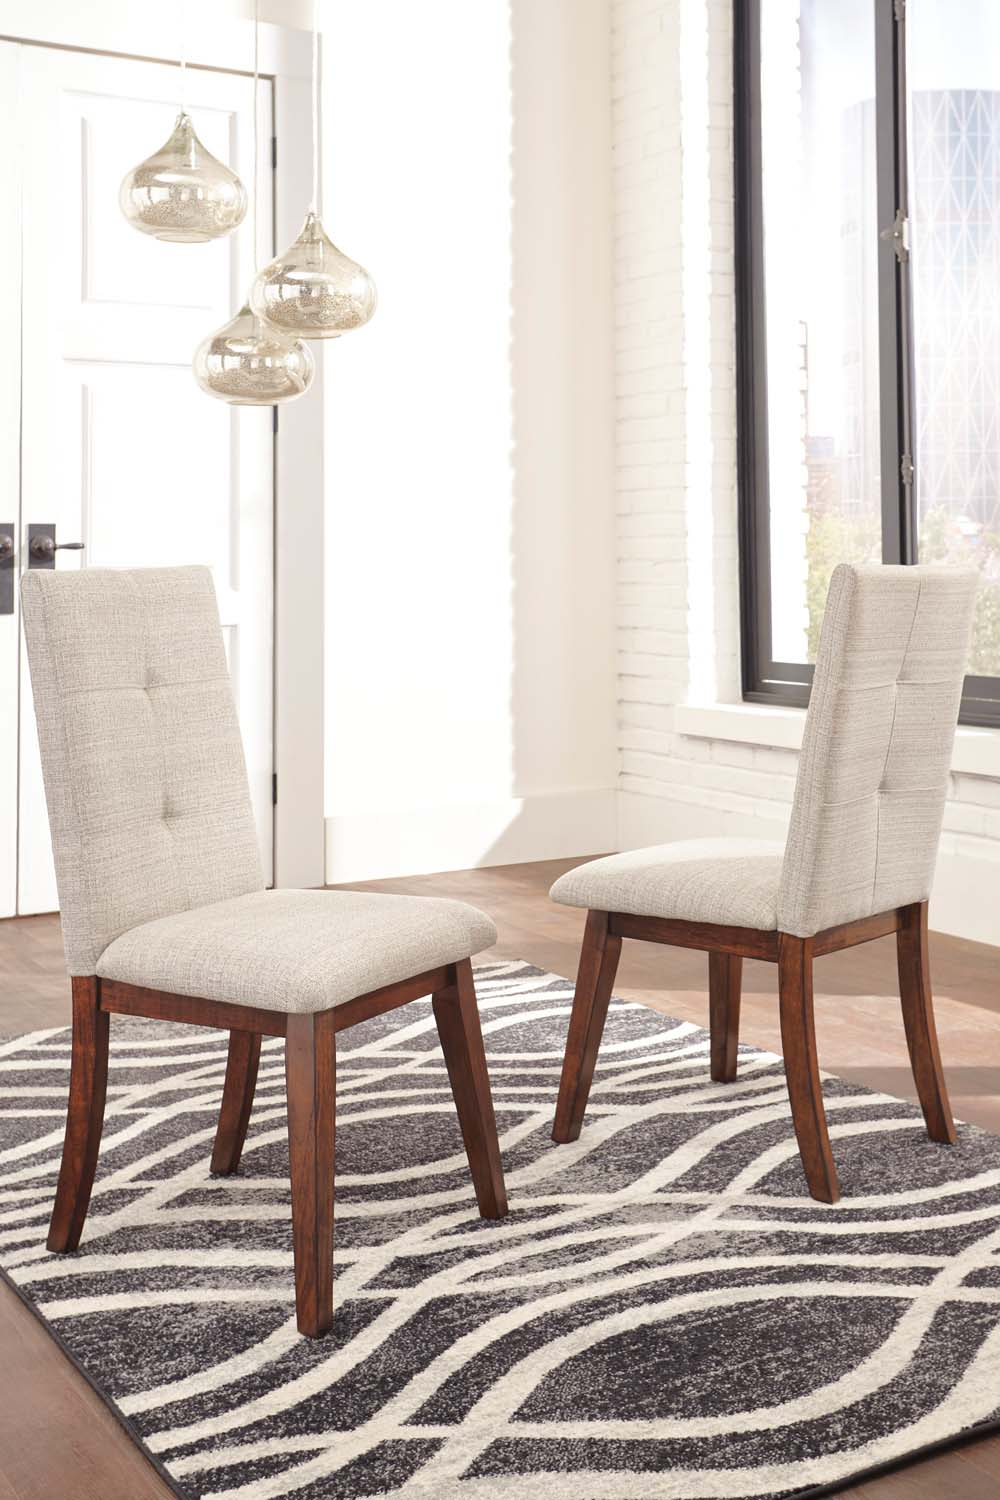 Centiar   Two Tone Brown Set Of 2 Dining Room Chairs